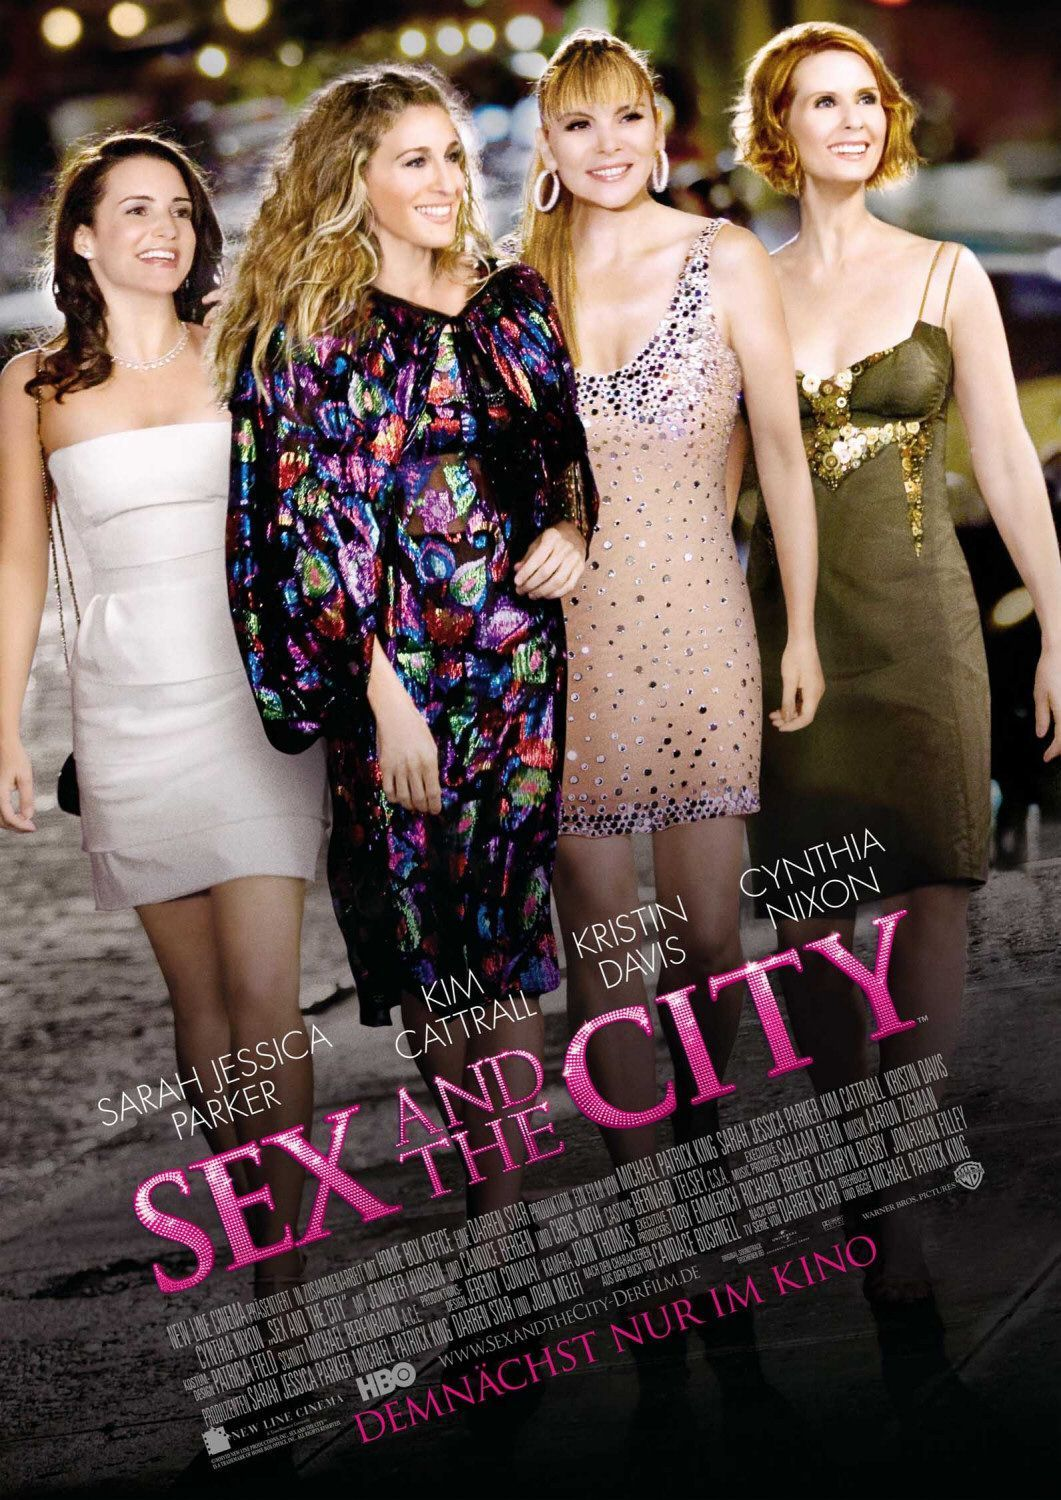 Sex and the city movie contest